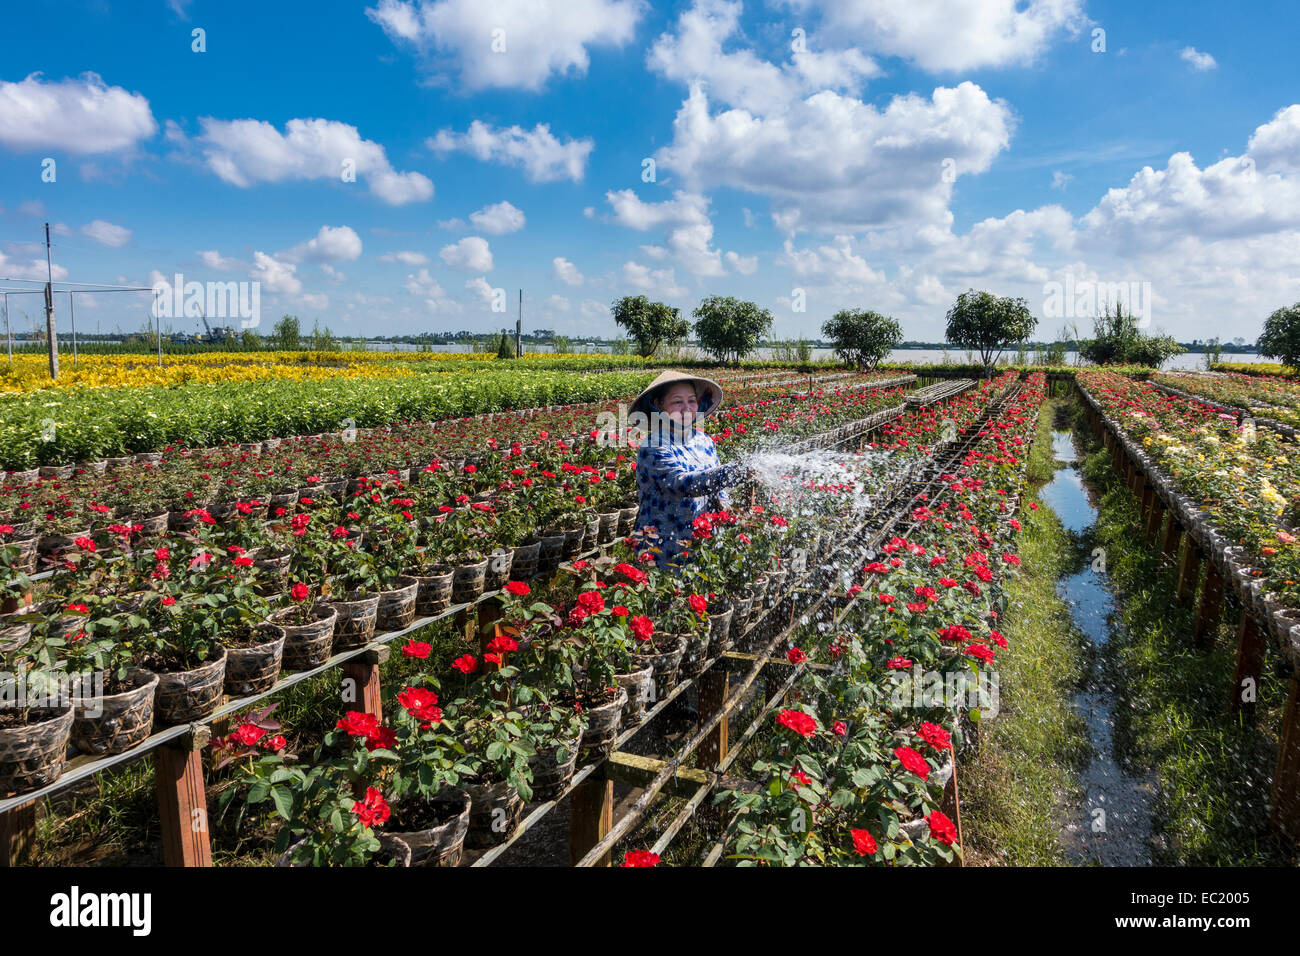 Worker watering the flowers, market garden, Sa dec, Long Xuyen, Mekong Delta, Vietnam - Stock Image